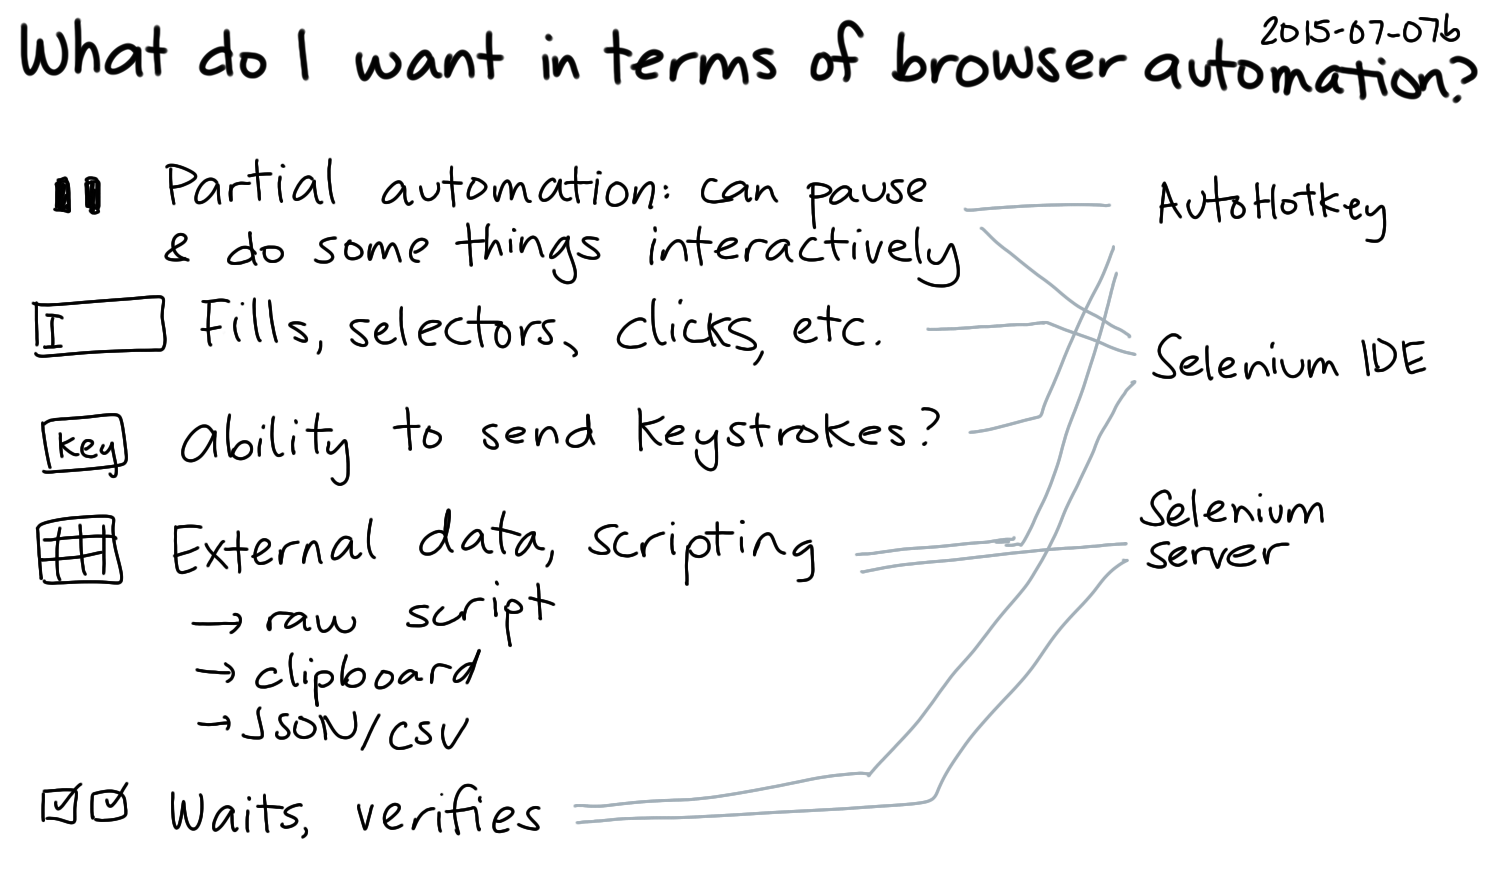 2015-07-07b What do I want in terms of browser automation -- index card #automation.png